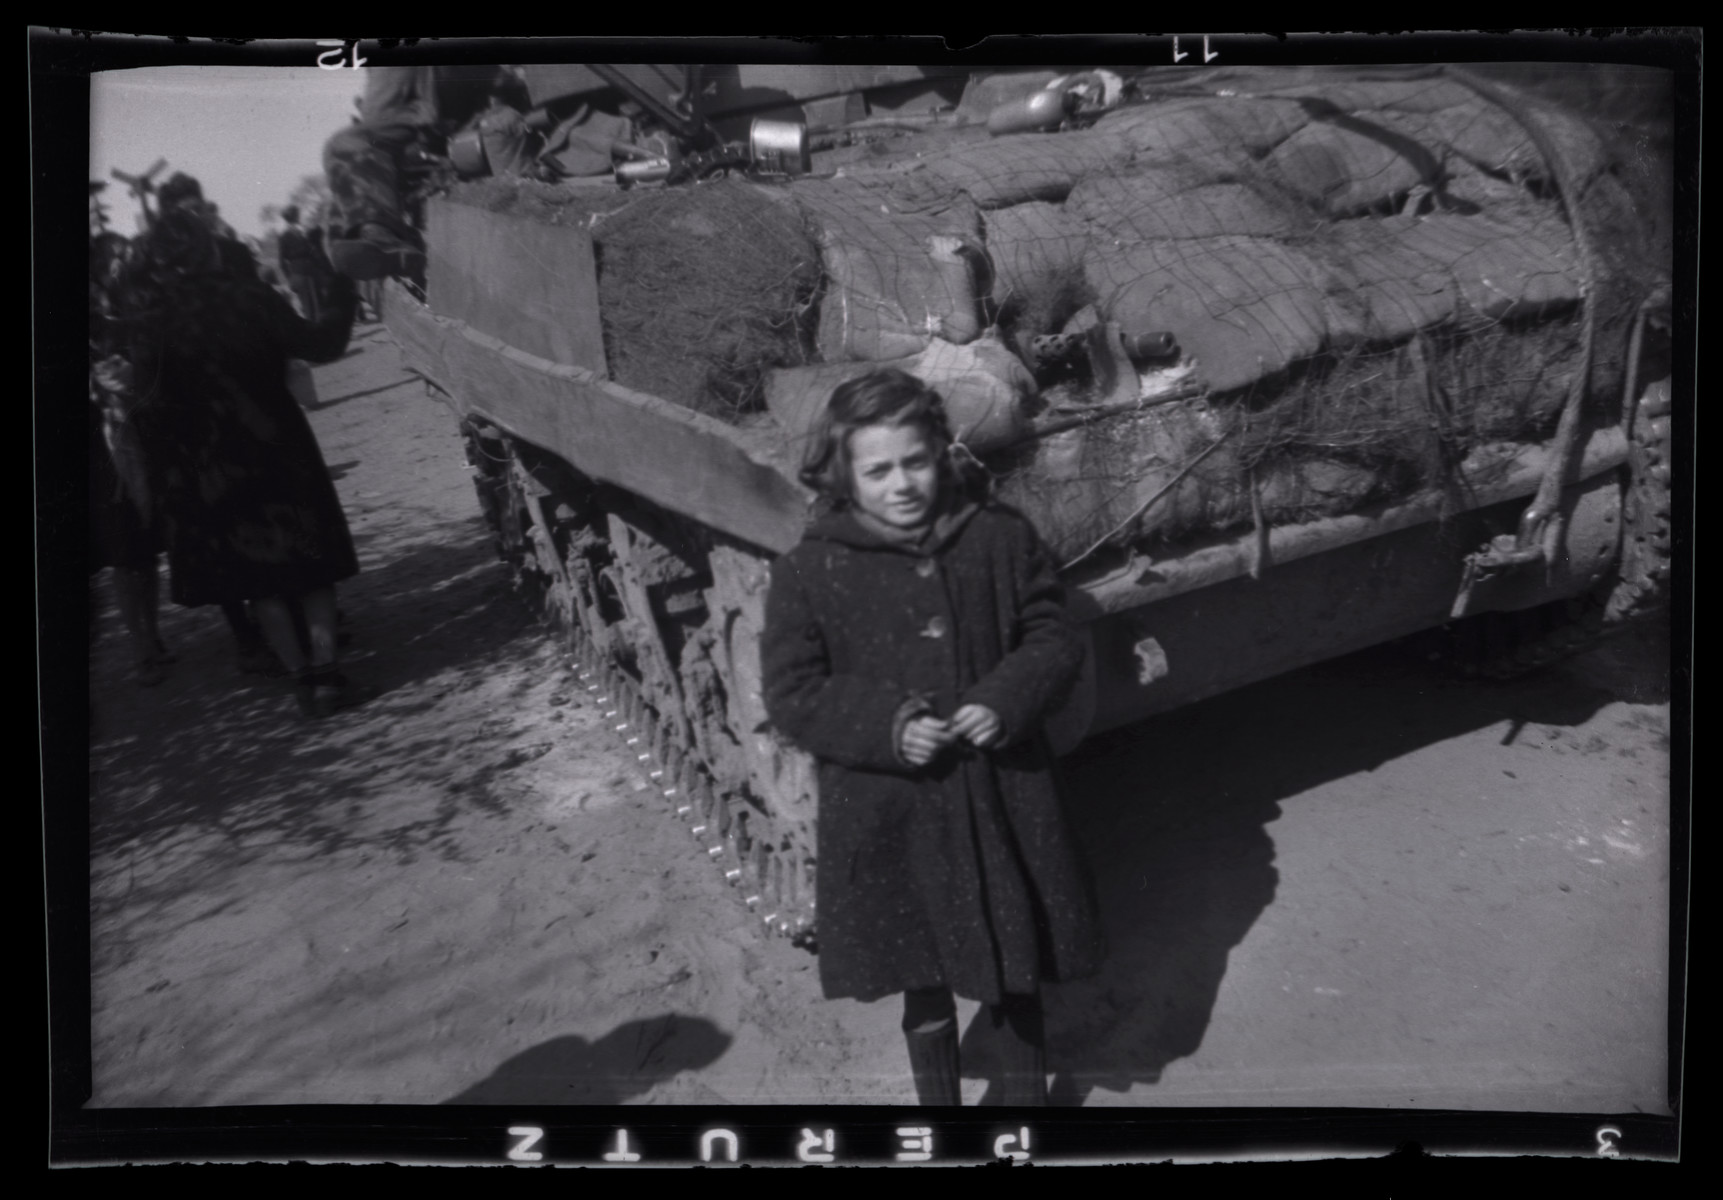 A young girl stands next to an American tank shortly after her liberation.